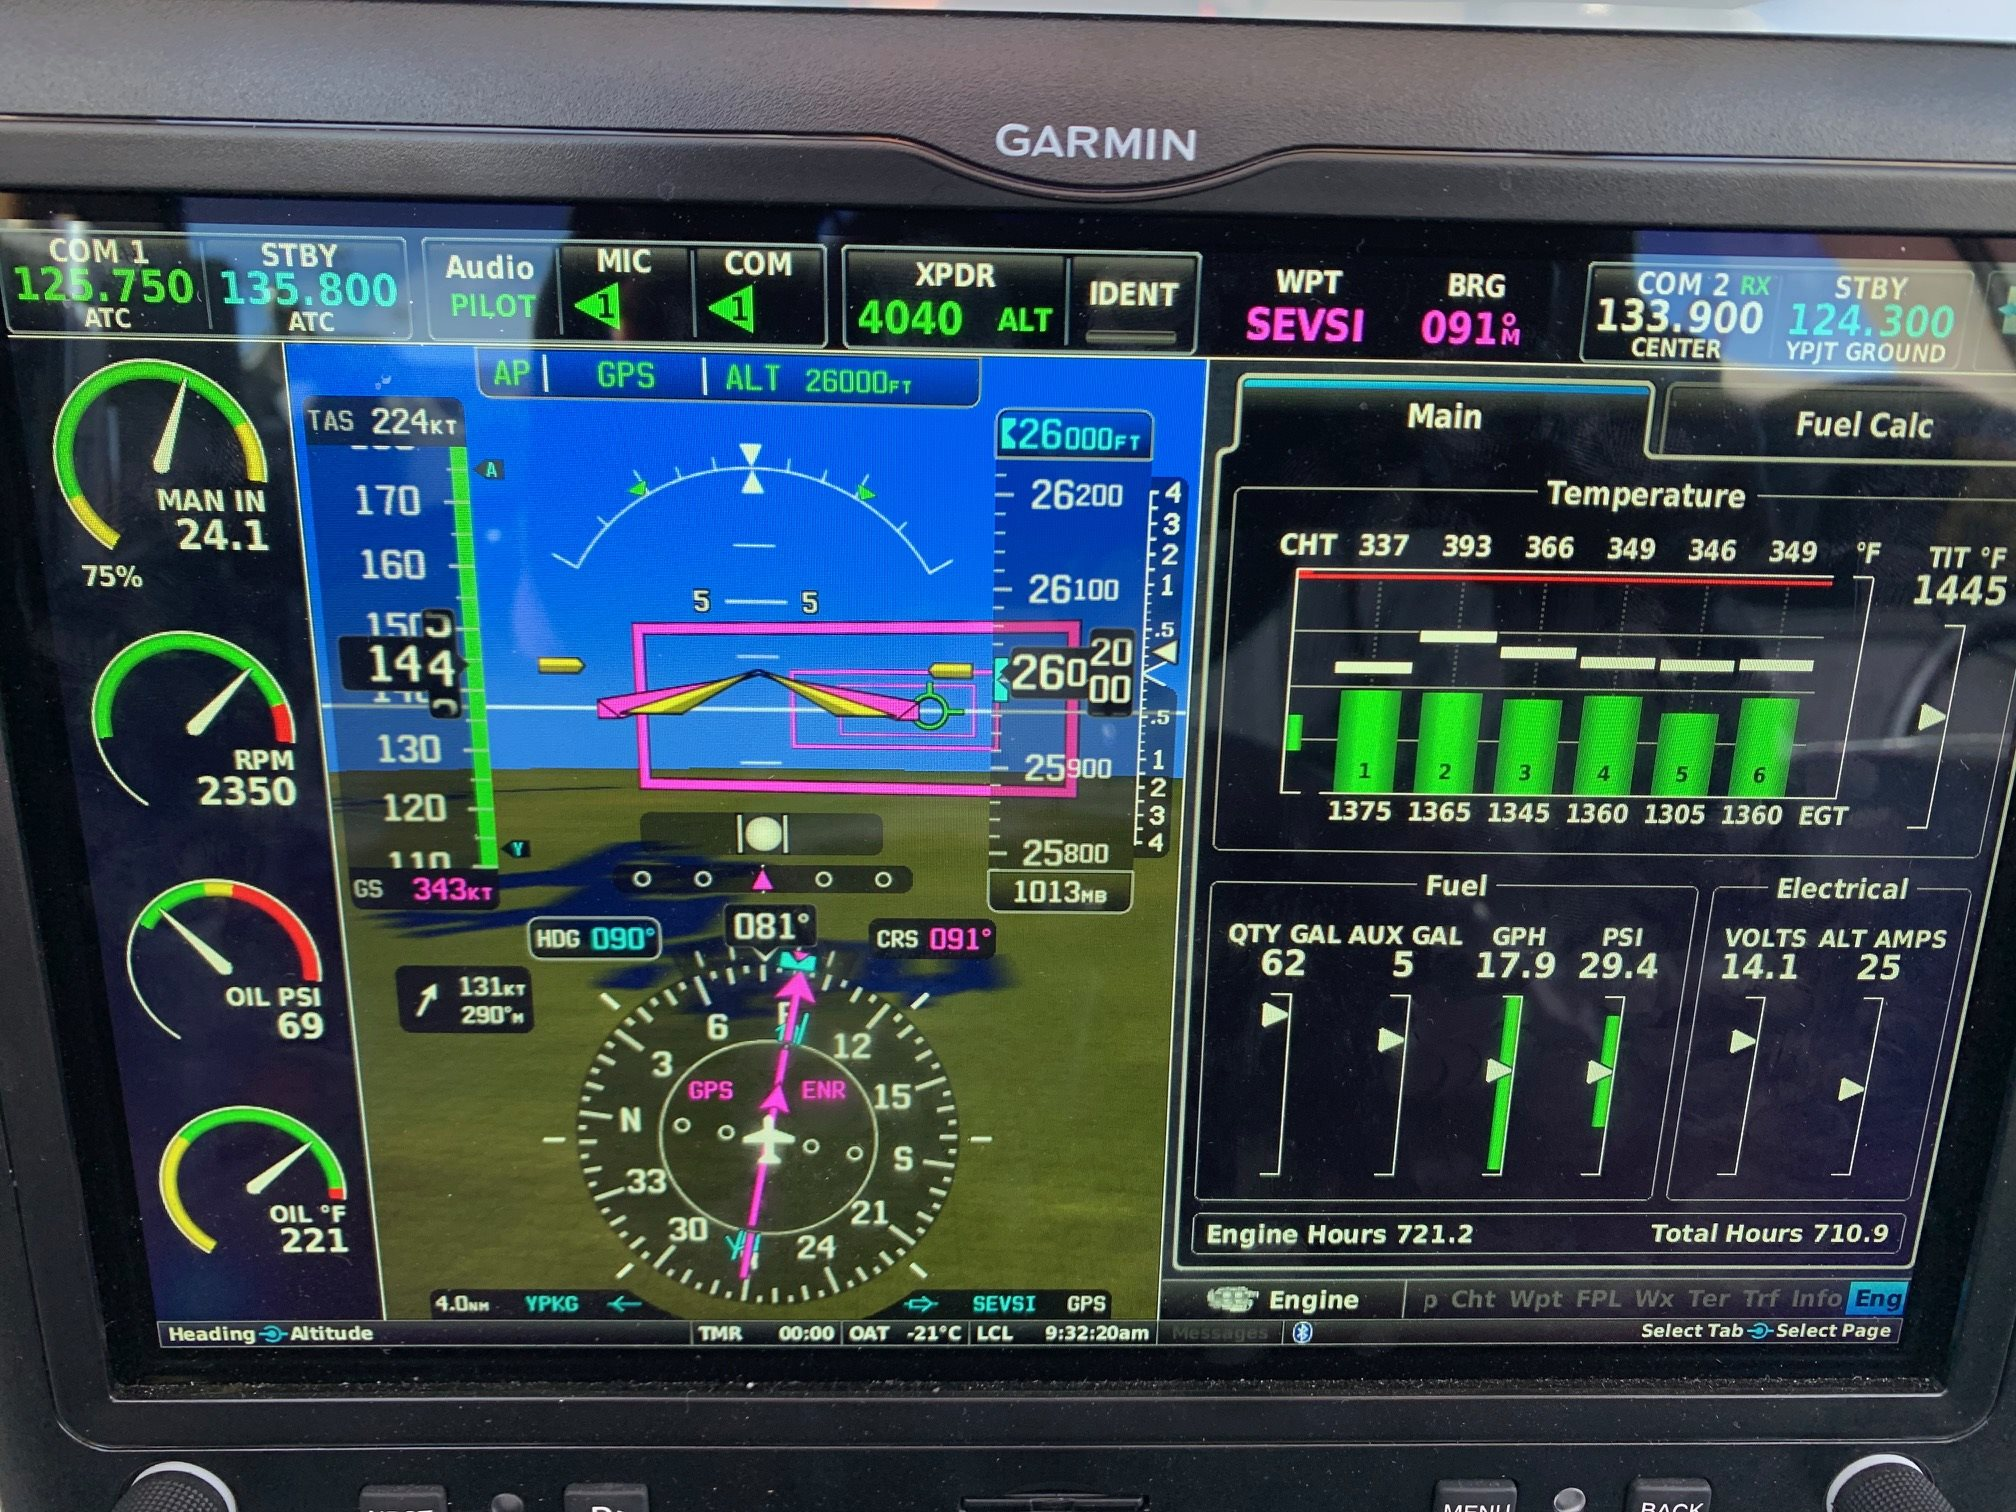 Flight Level 260 @ 343kts GS (Glasair III Super)